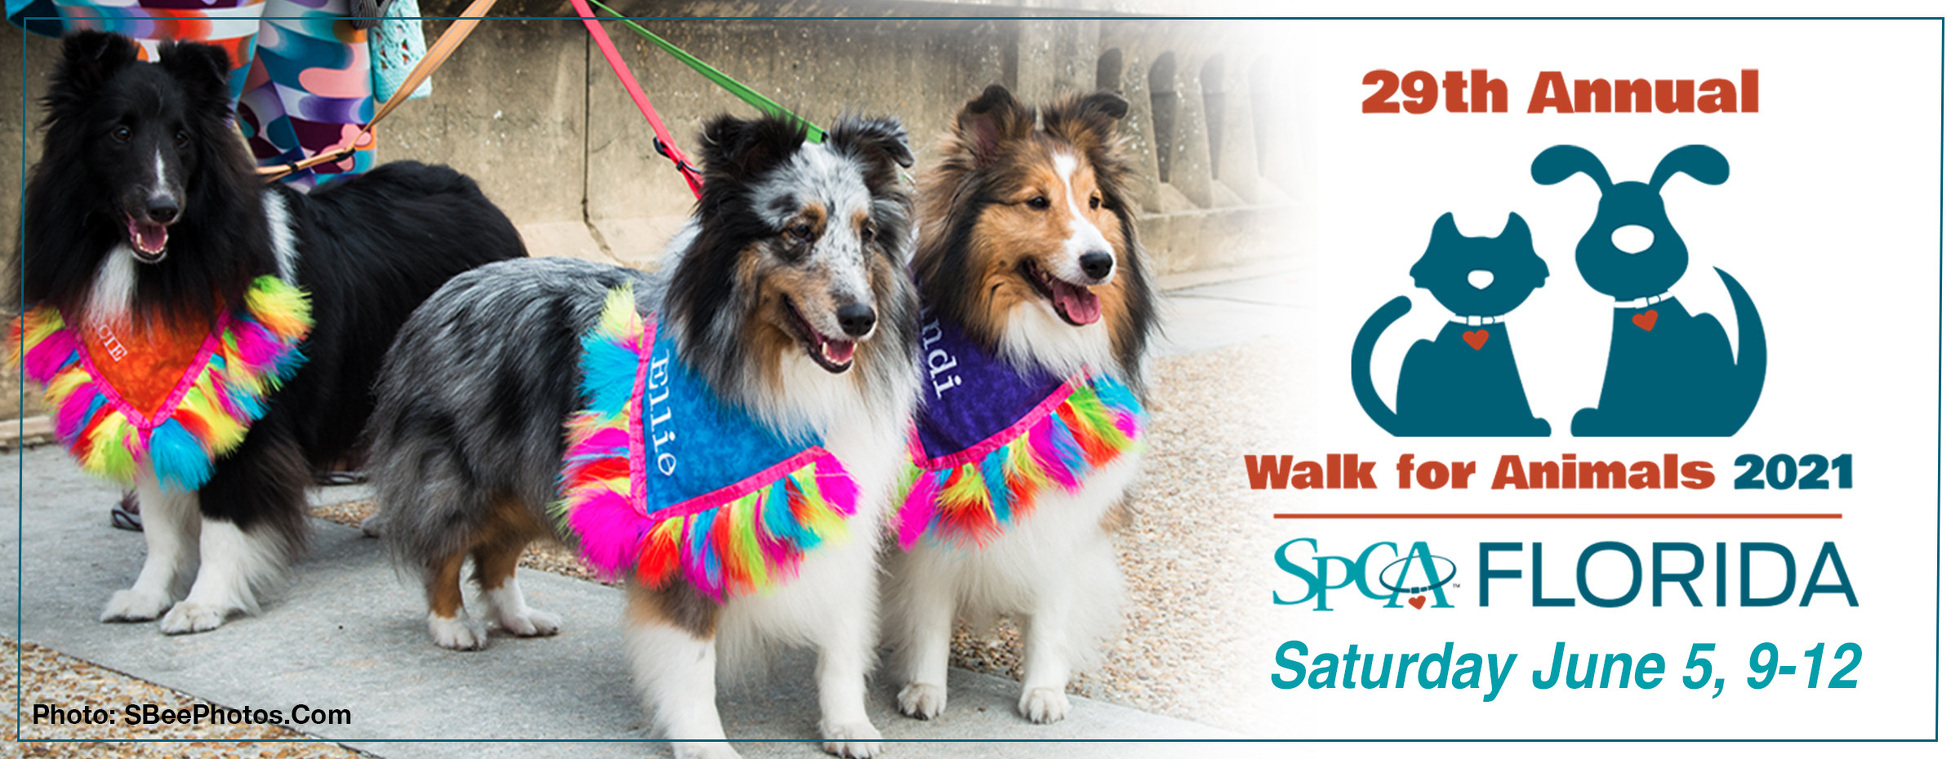 2021 Walk for Animals